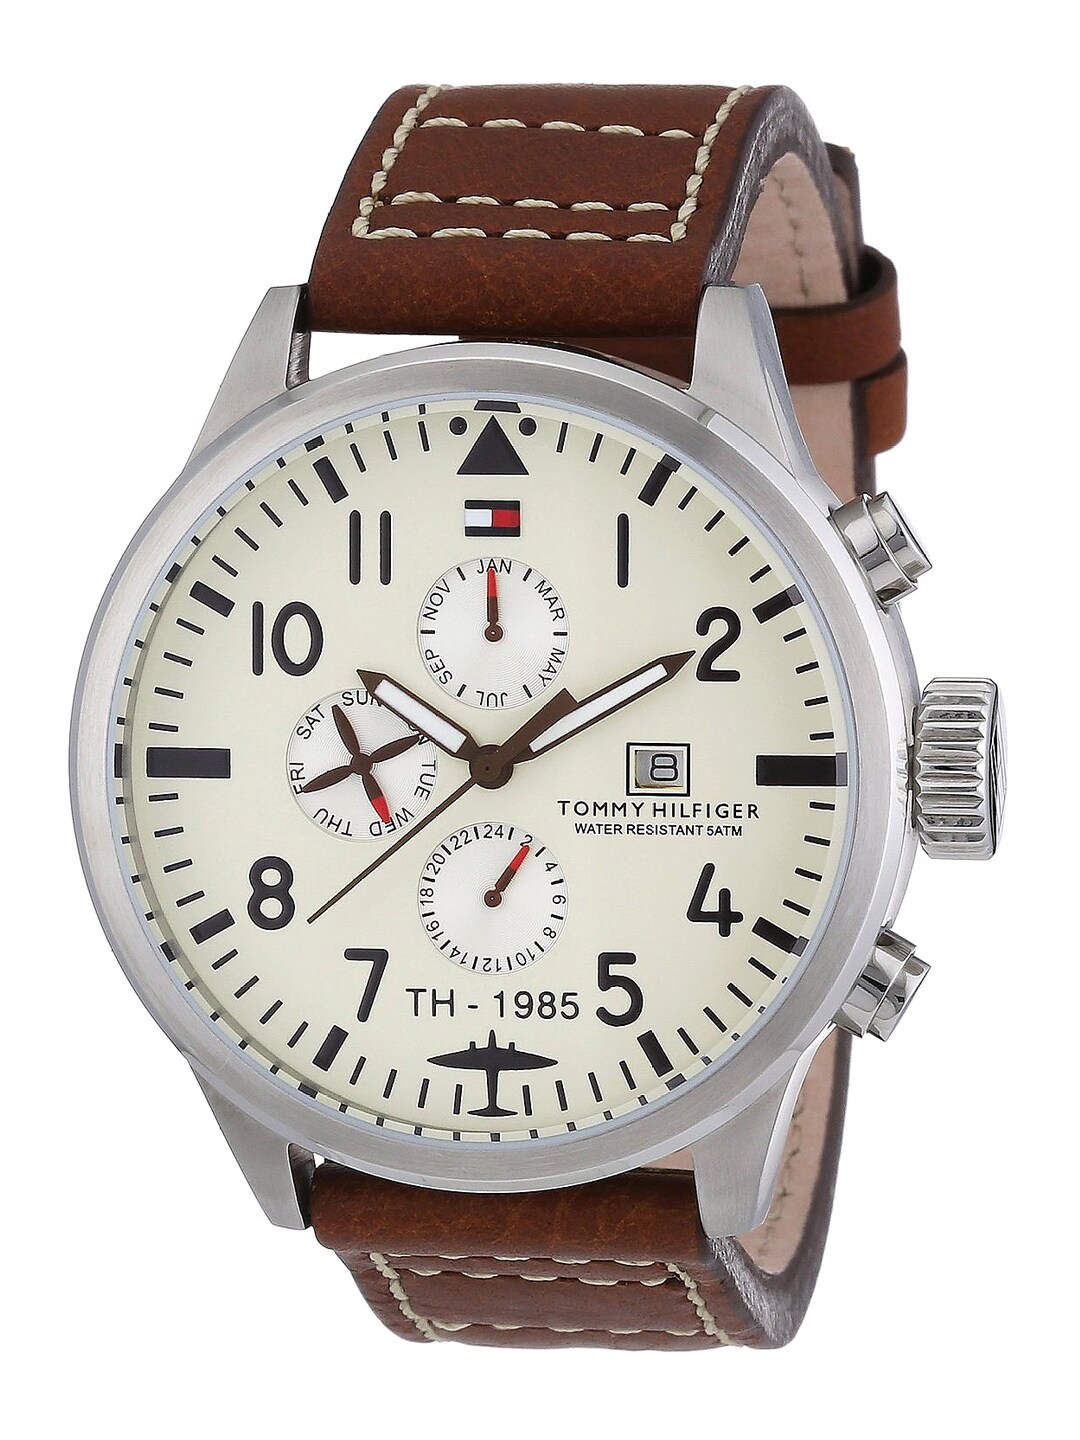 tommy hilfiger watches buy tommy hilfiger watches for women men